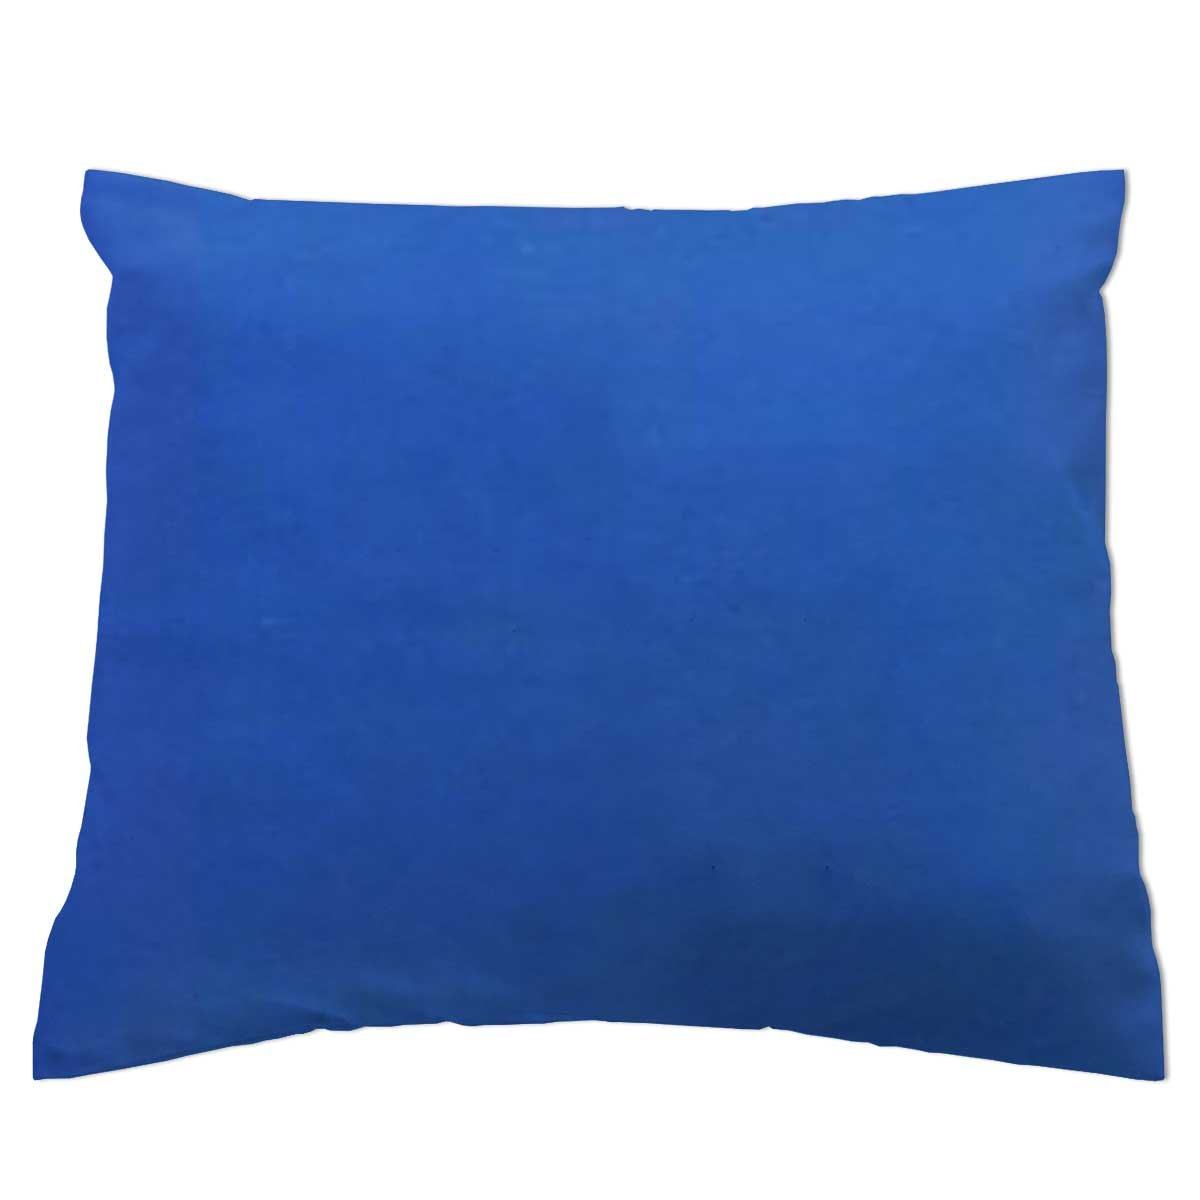 SheetWorld - Baby Pillow Case - Percale Pillow Case - Deep Solids - Royal Blue - Made In USA